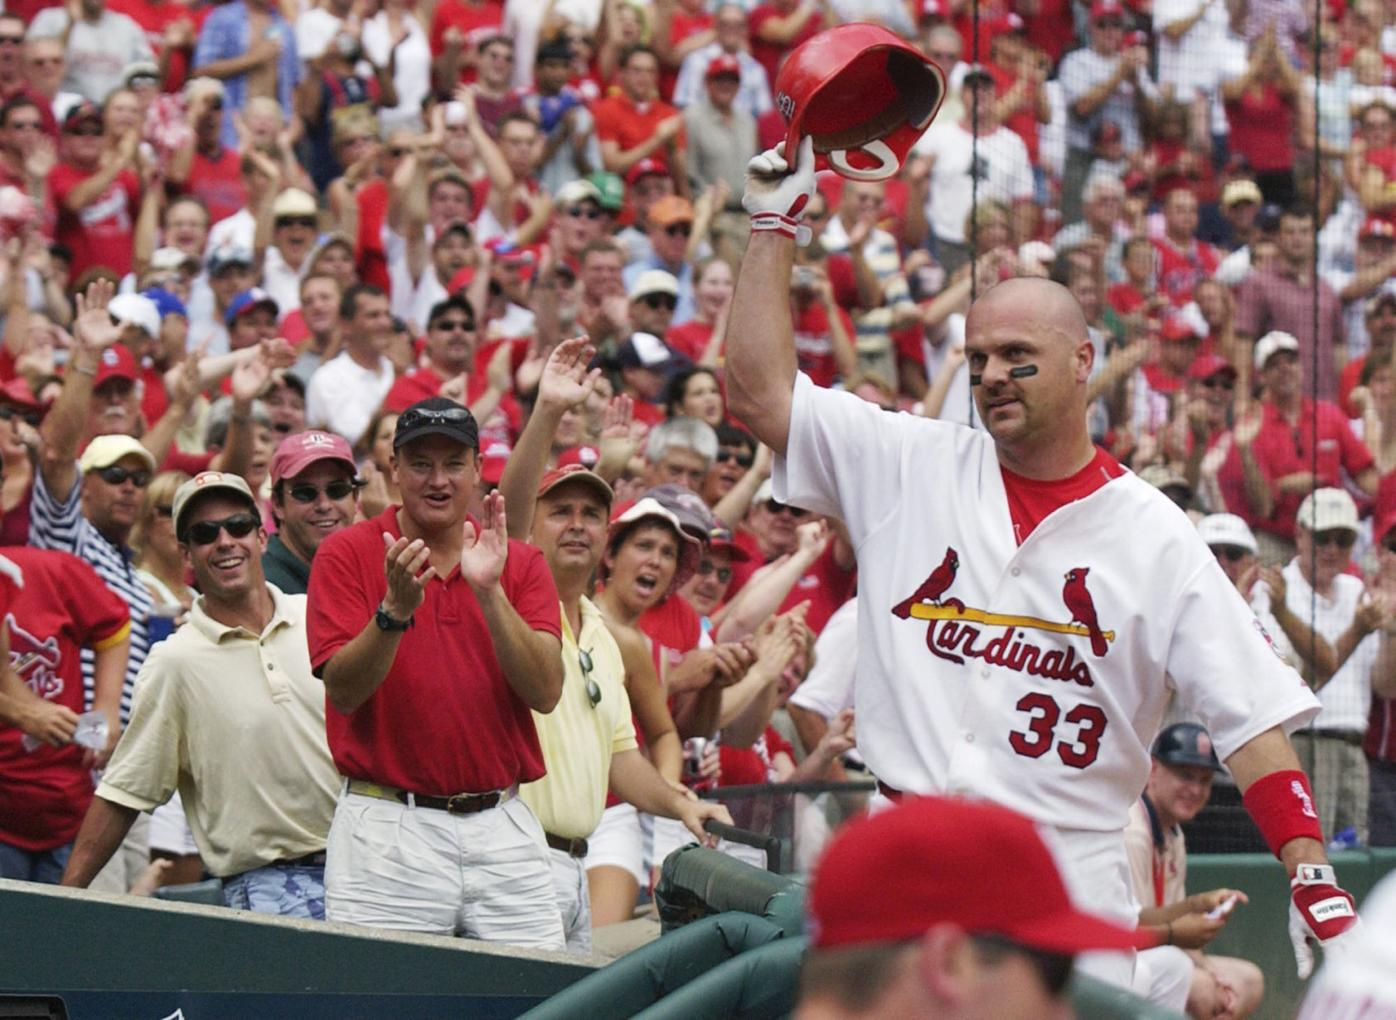 Hall of Fame Inductions Preview Baseball